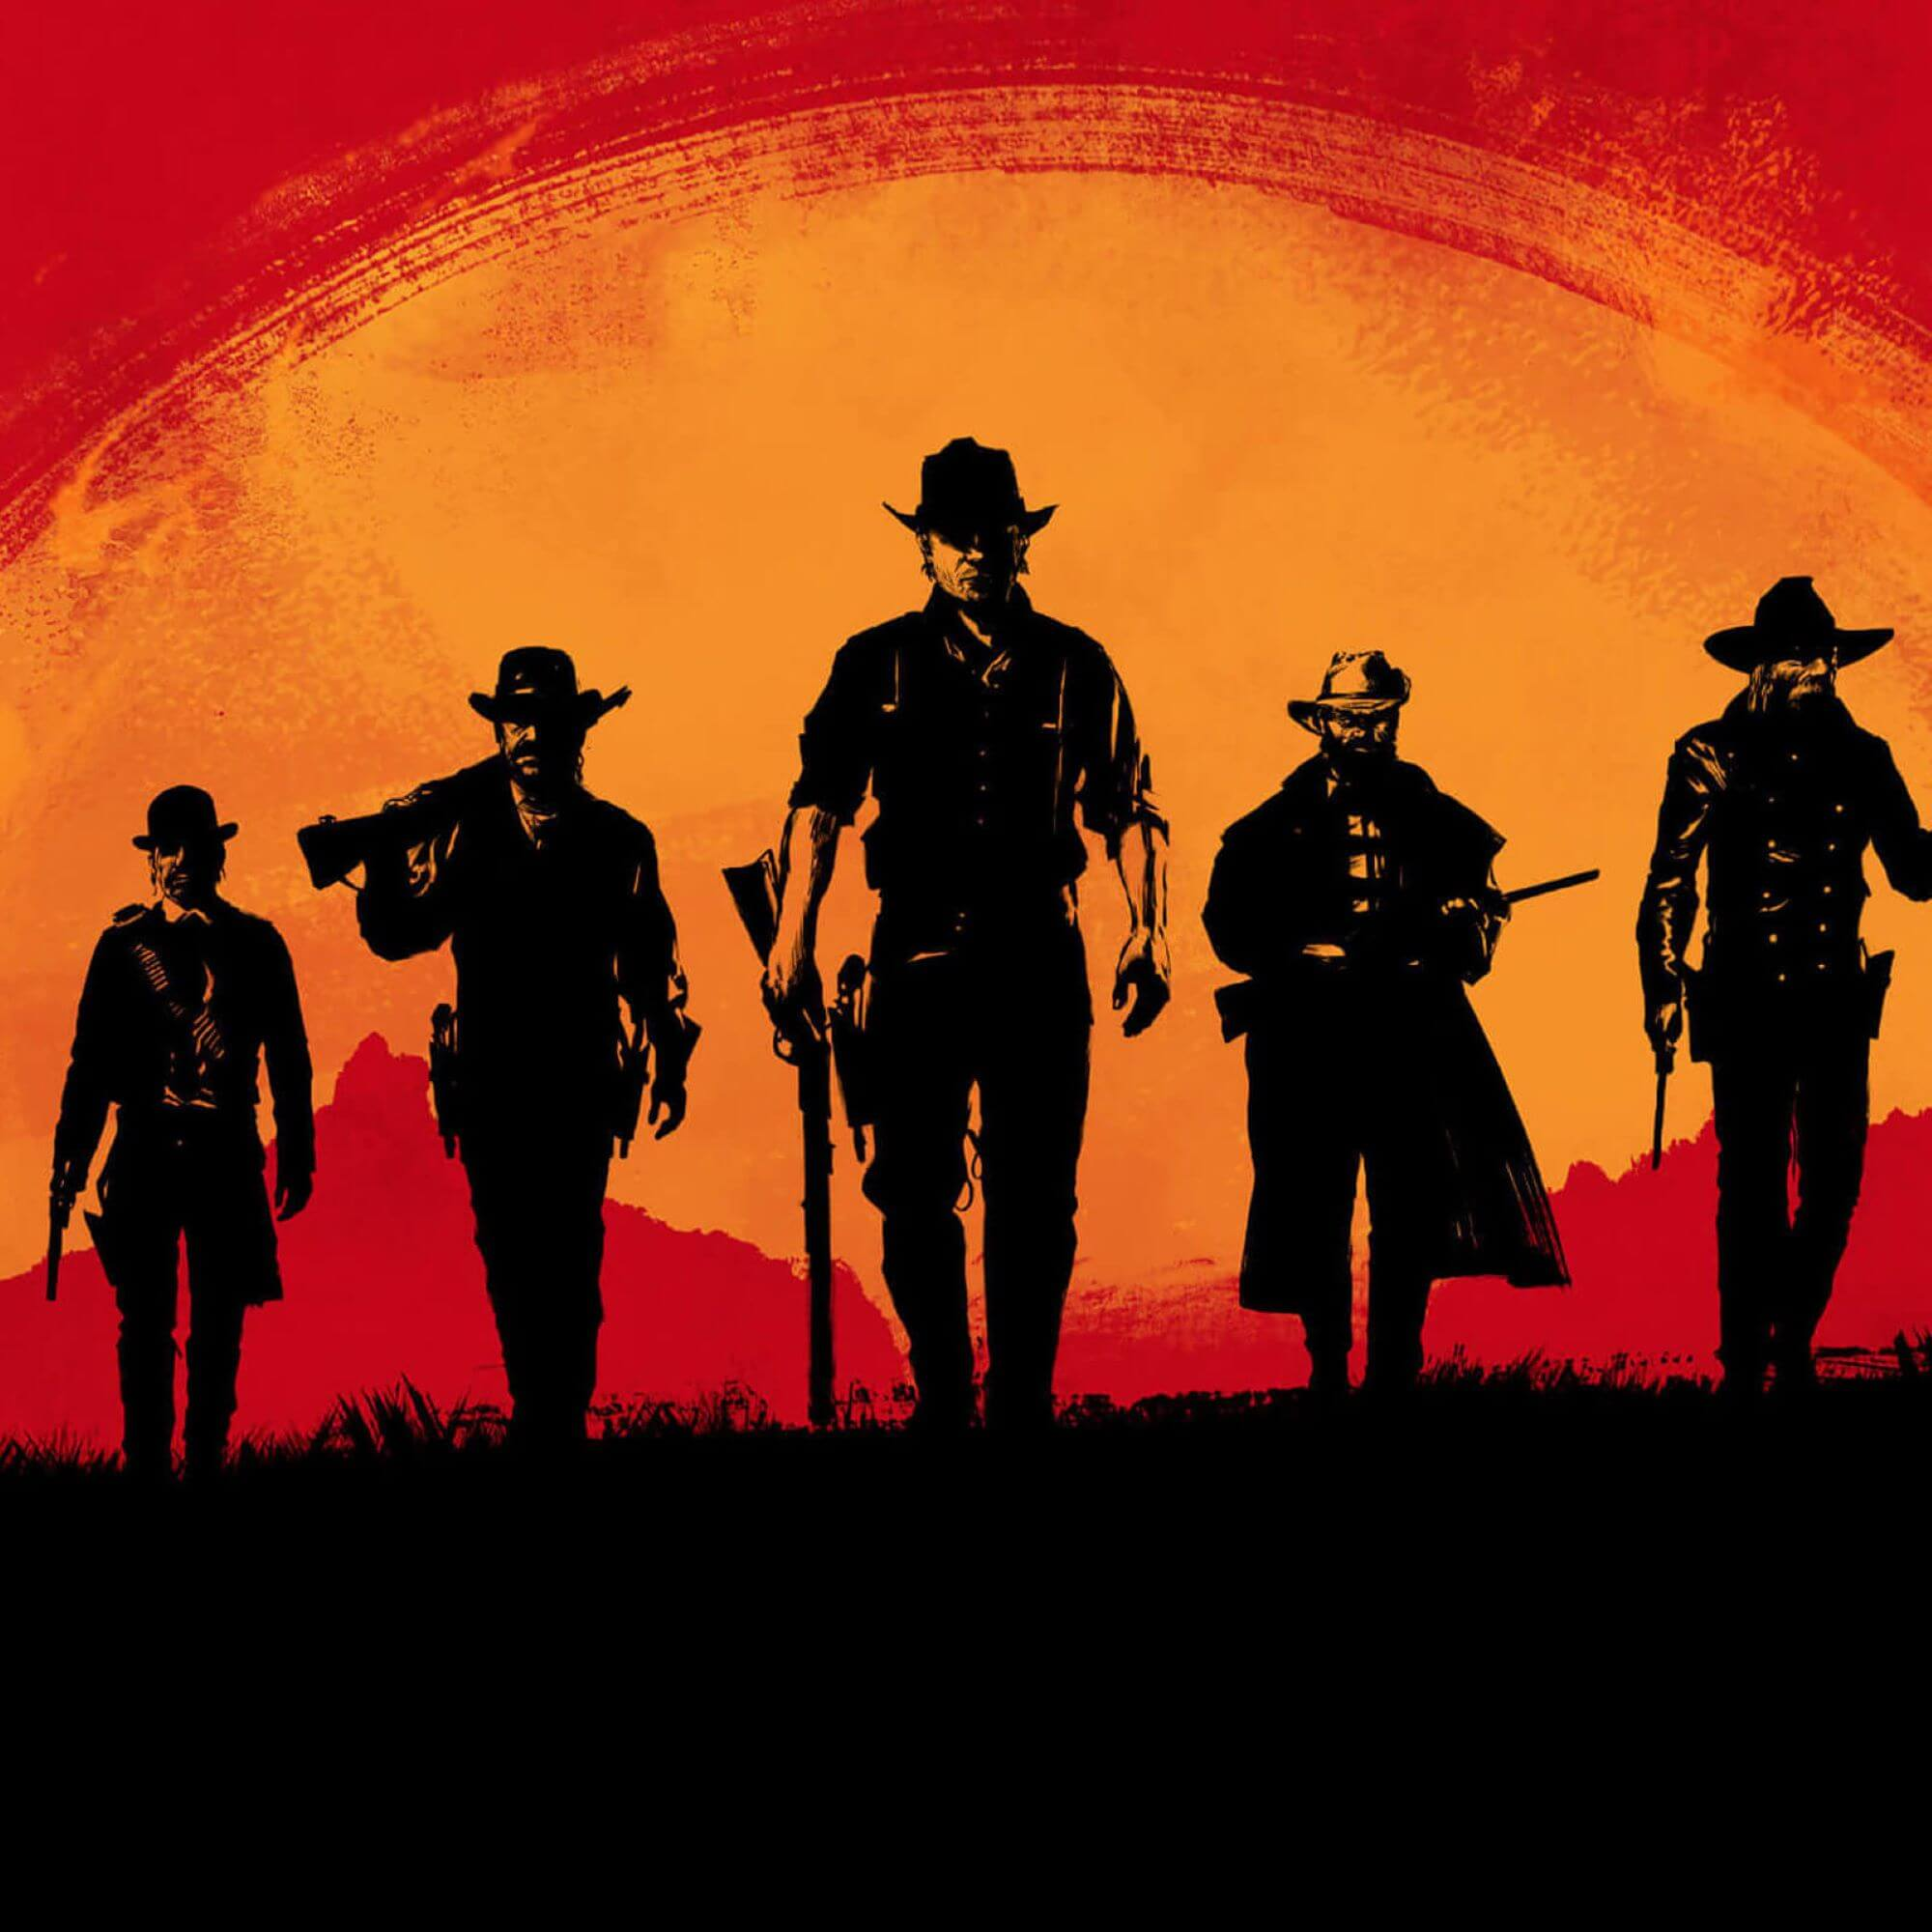 silhouettes of cowboys amongst a red and orange sky.